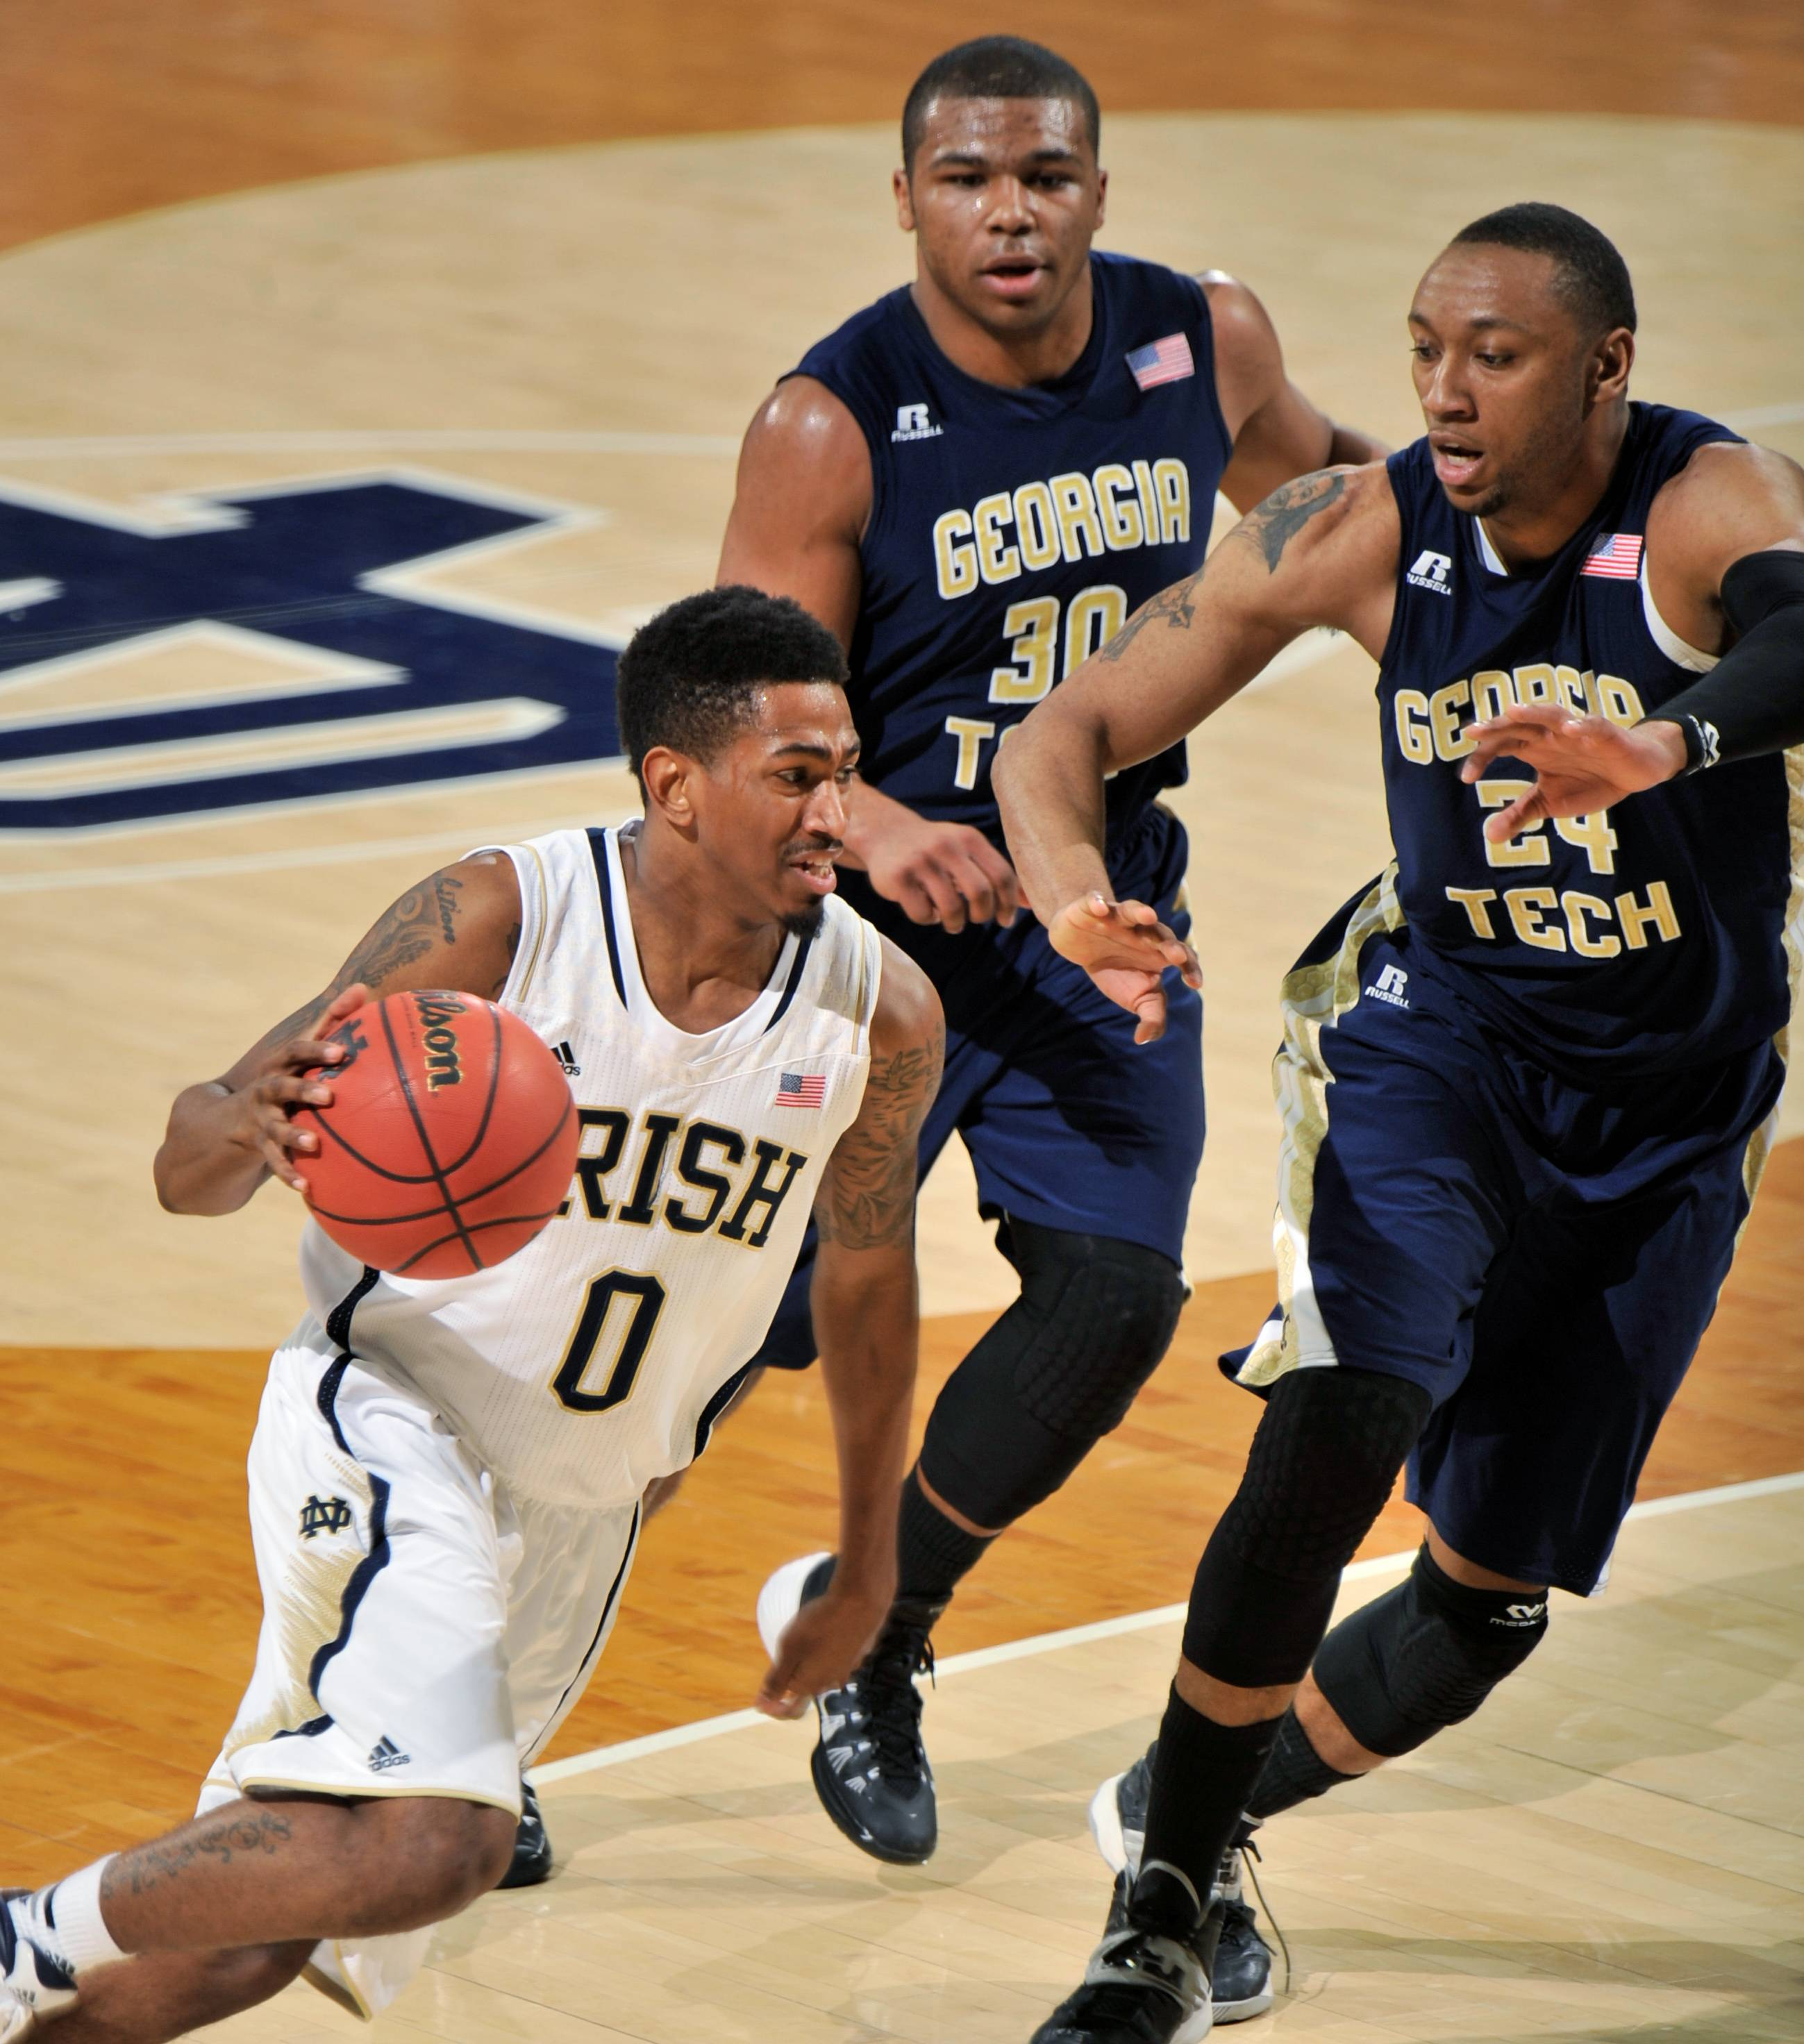 Notre Dame guard Eric Atkins, left, drives the lane as Georgia Tech guard Corey Heyward, middle, and Kammeon Holsey defend during the first half of an NCAA college basketball game, Wednesday, Feb. 26, 2014 in South Bend, Ind.